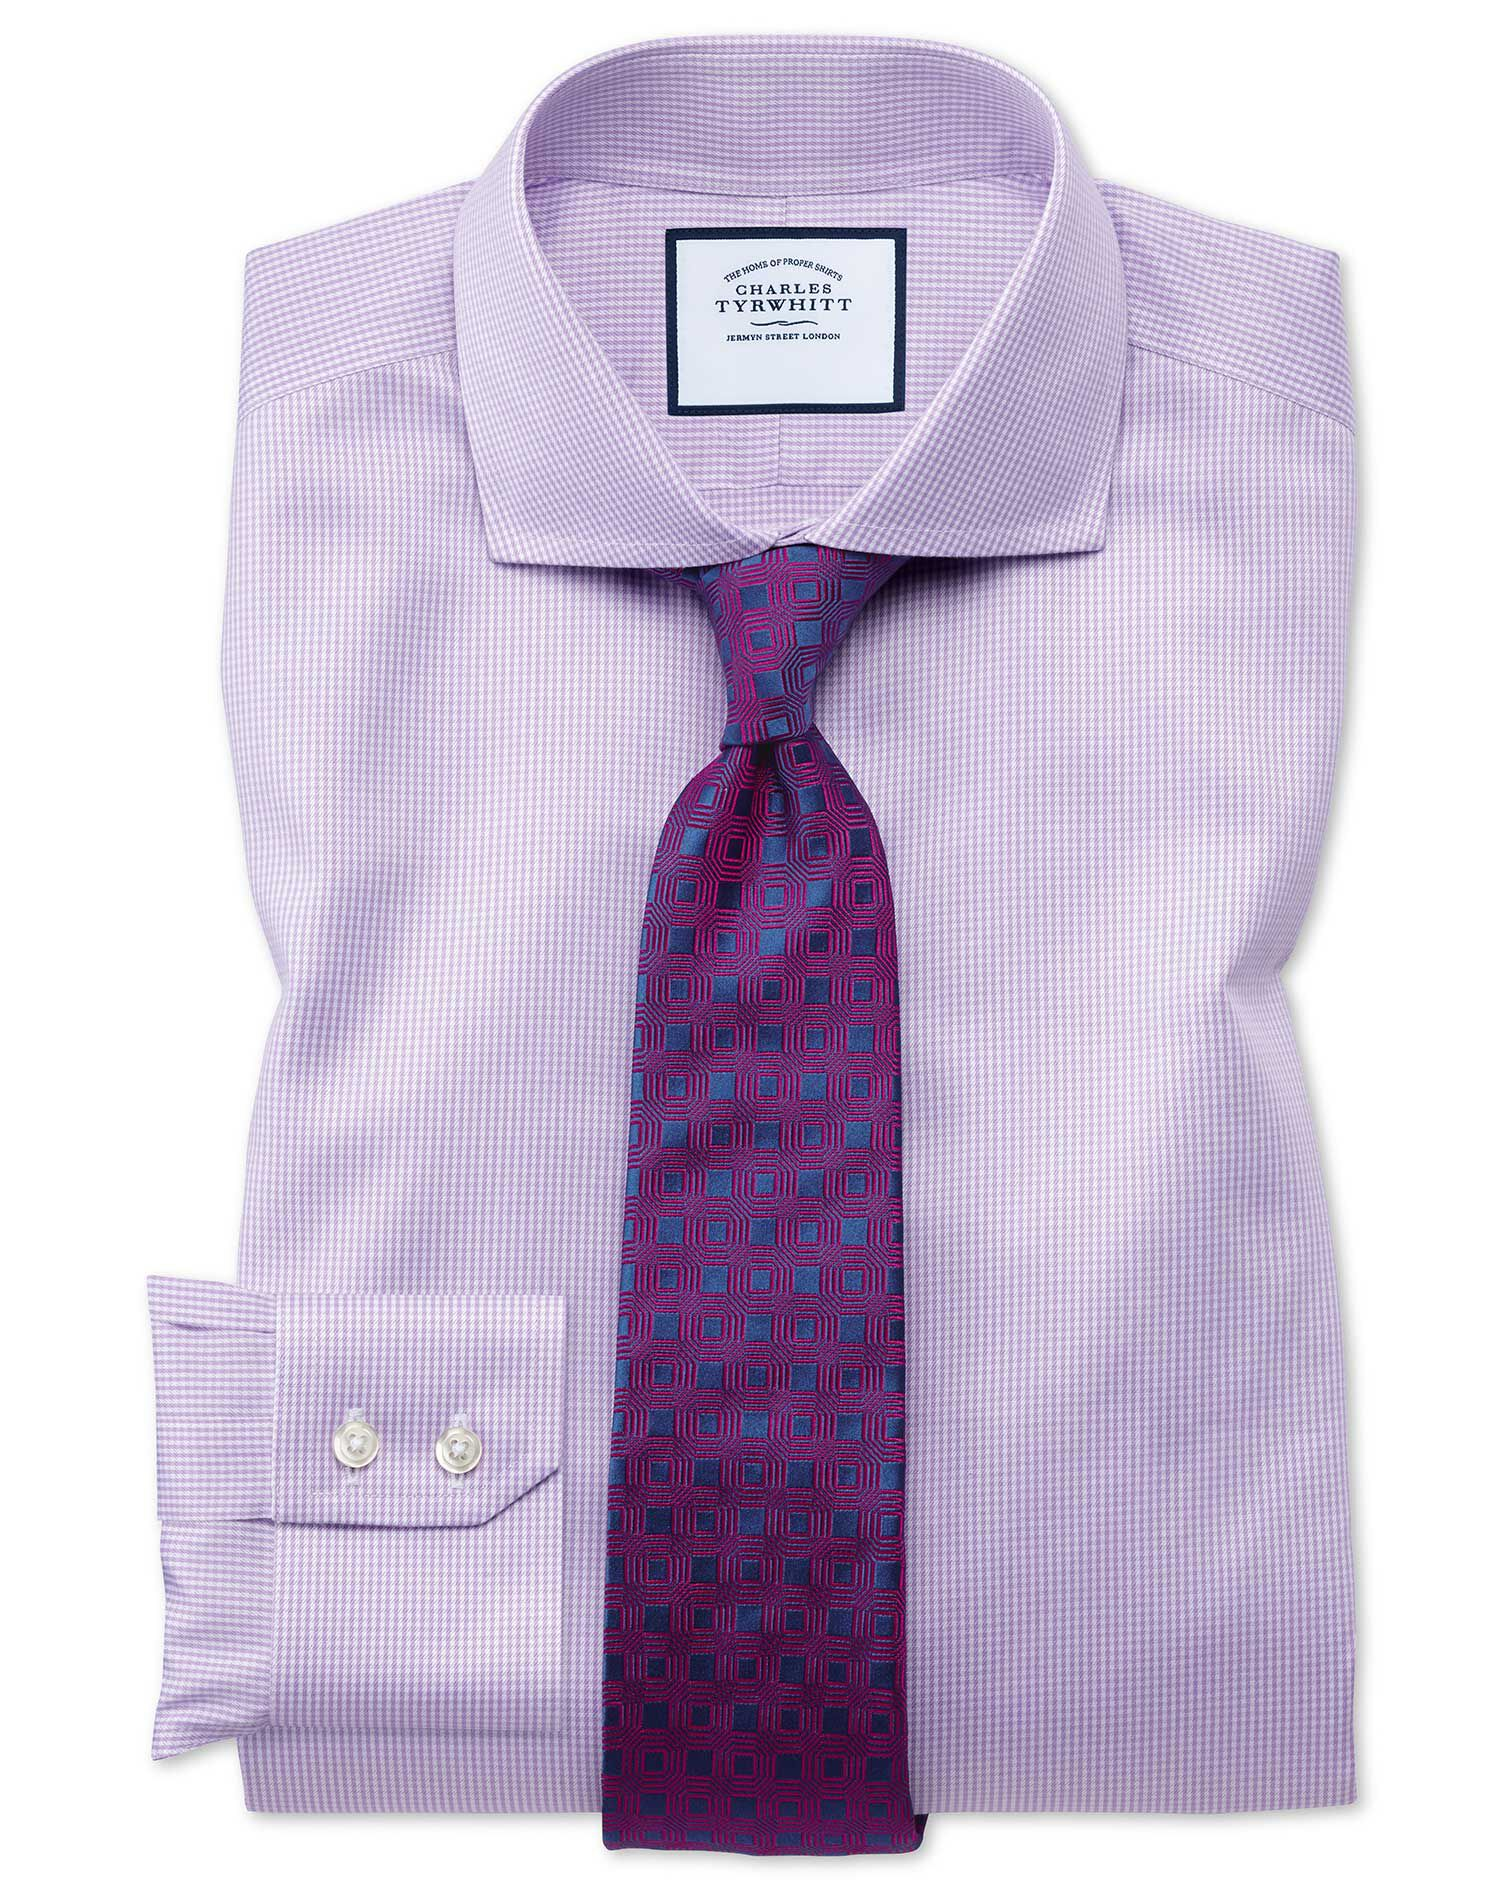 Extra Slim Fit Cutaway Collar Non-Iron Puppytooth Lilac Cotton Formal Shirt Double Cuff Size 16/35 b